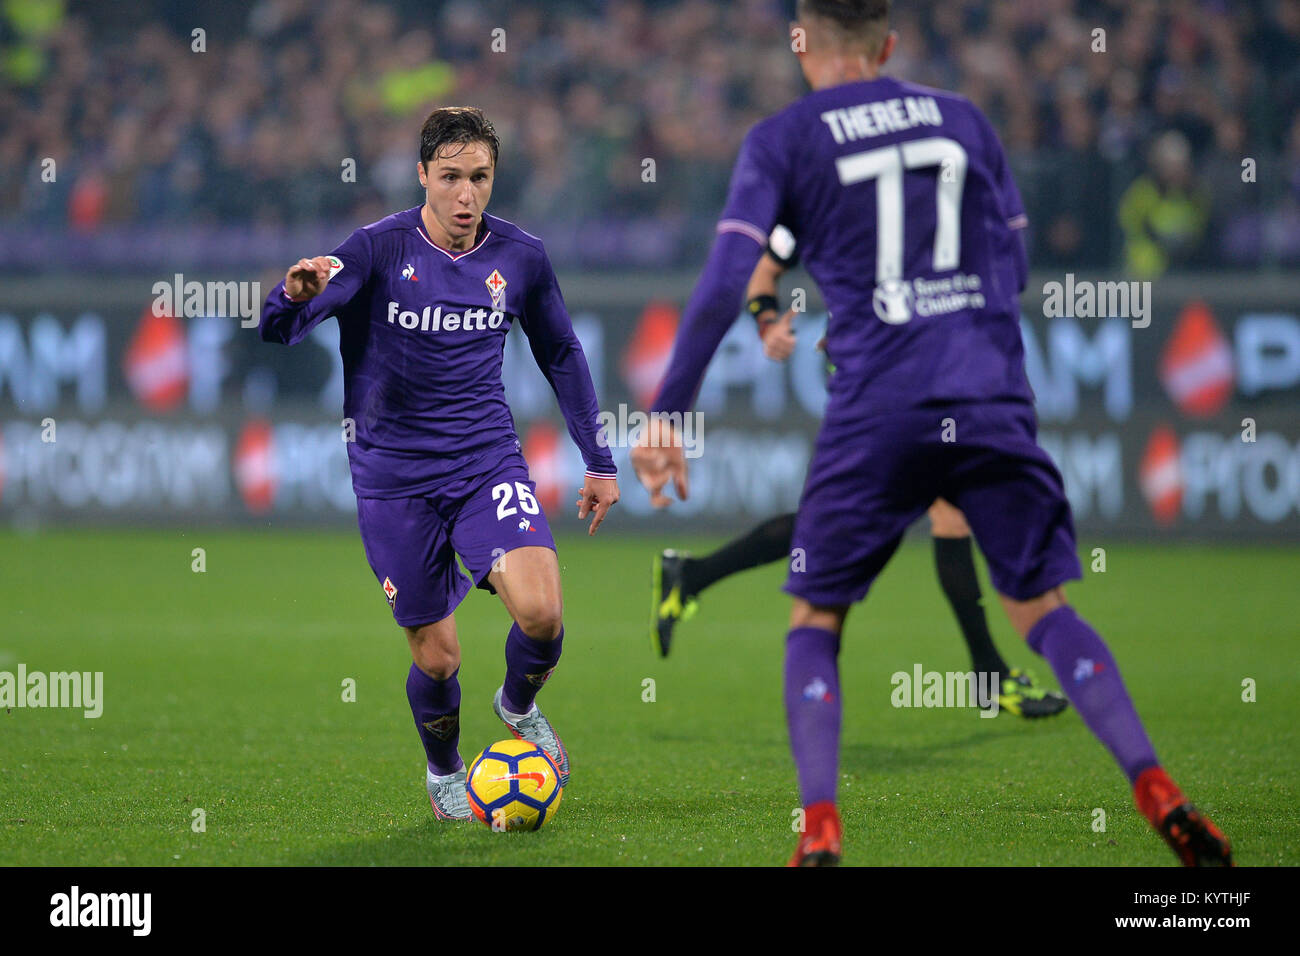 Maillot Domicile Fiorentina CYRIL THEREAU